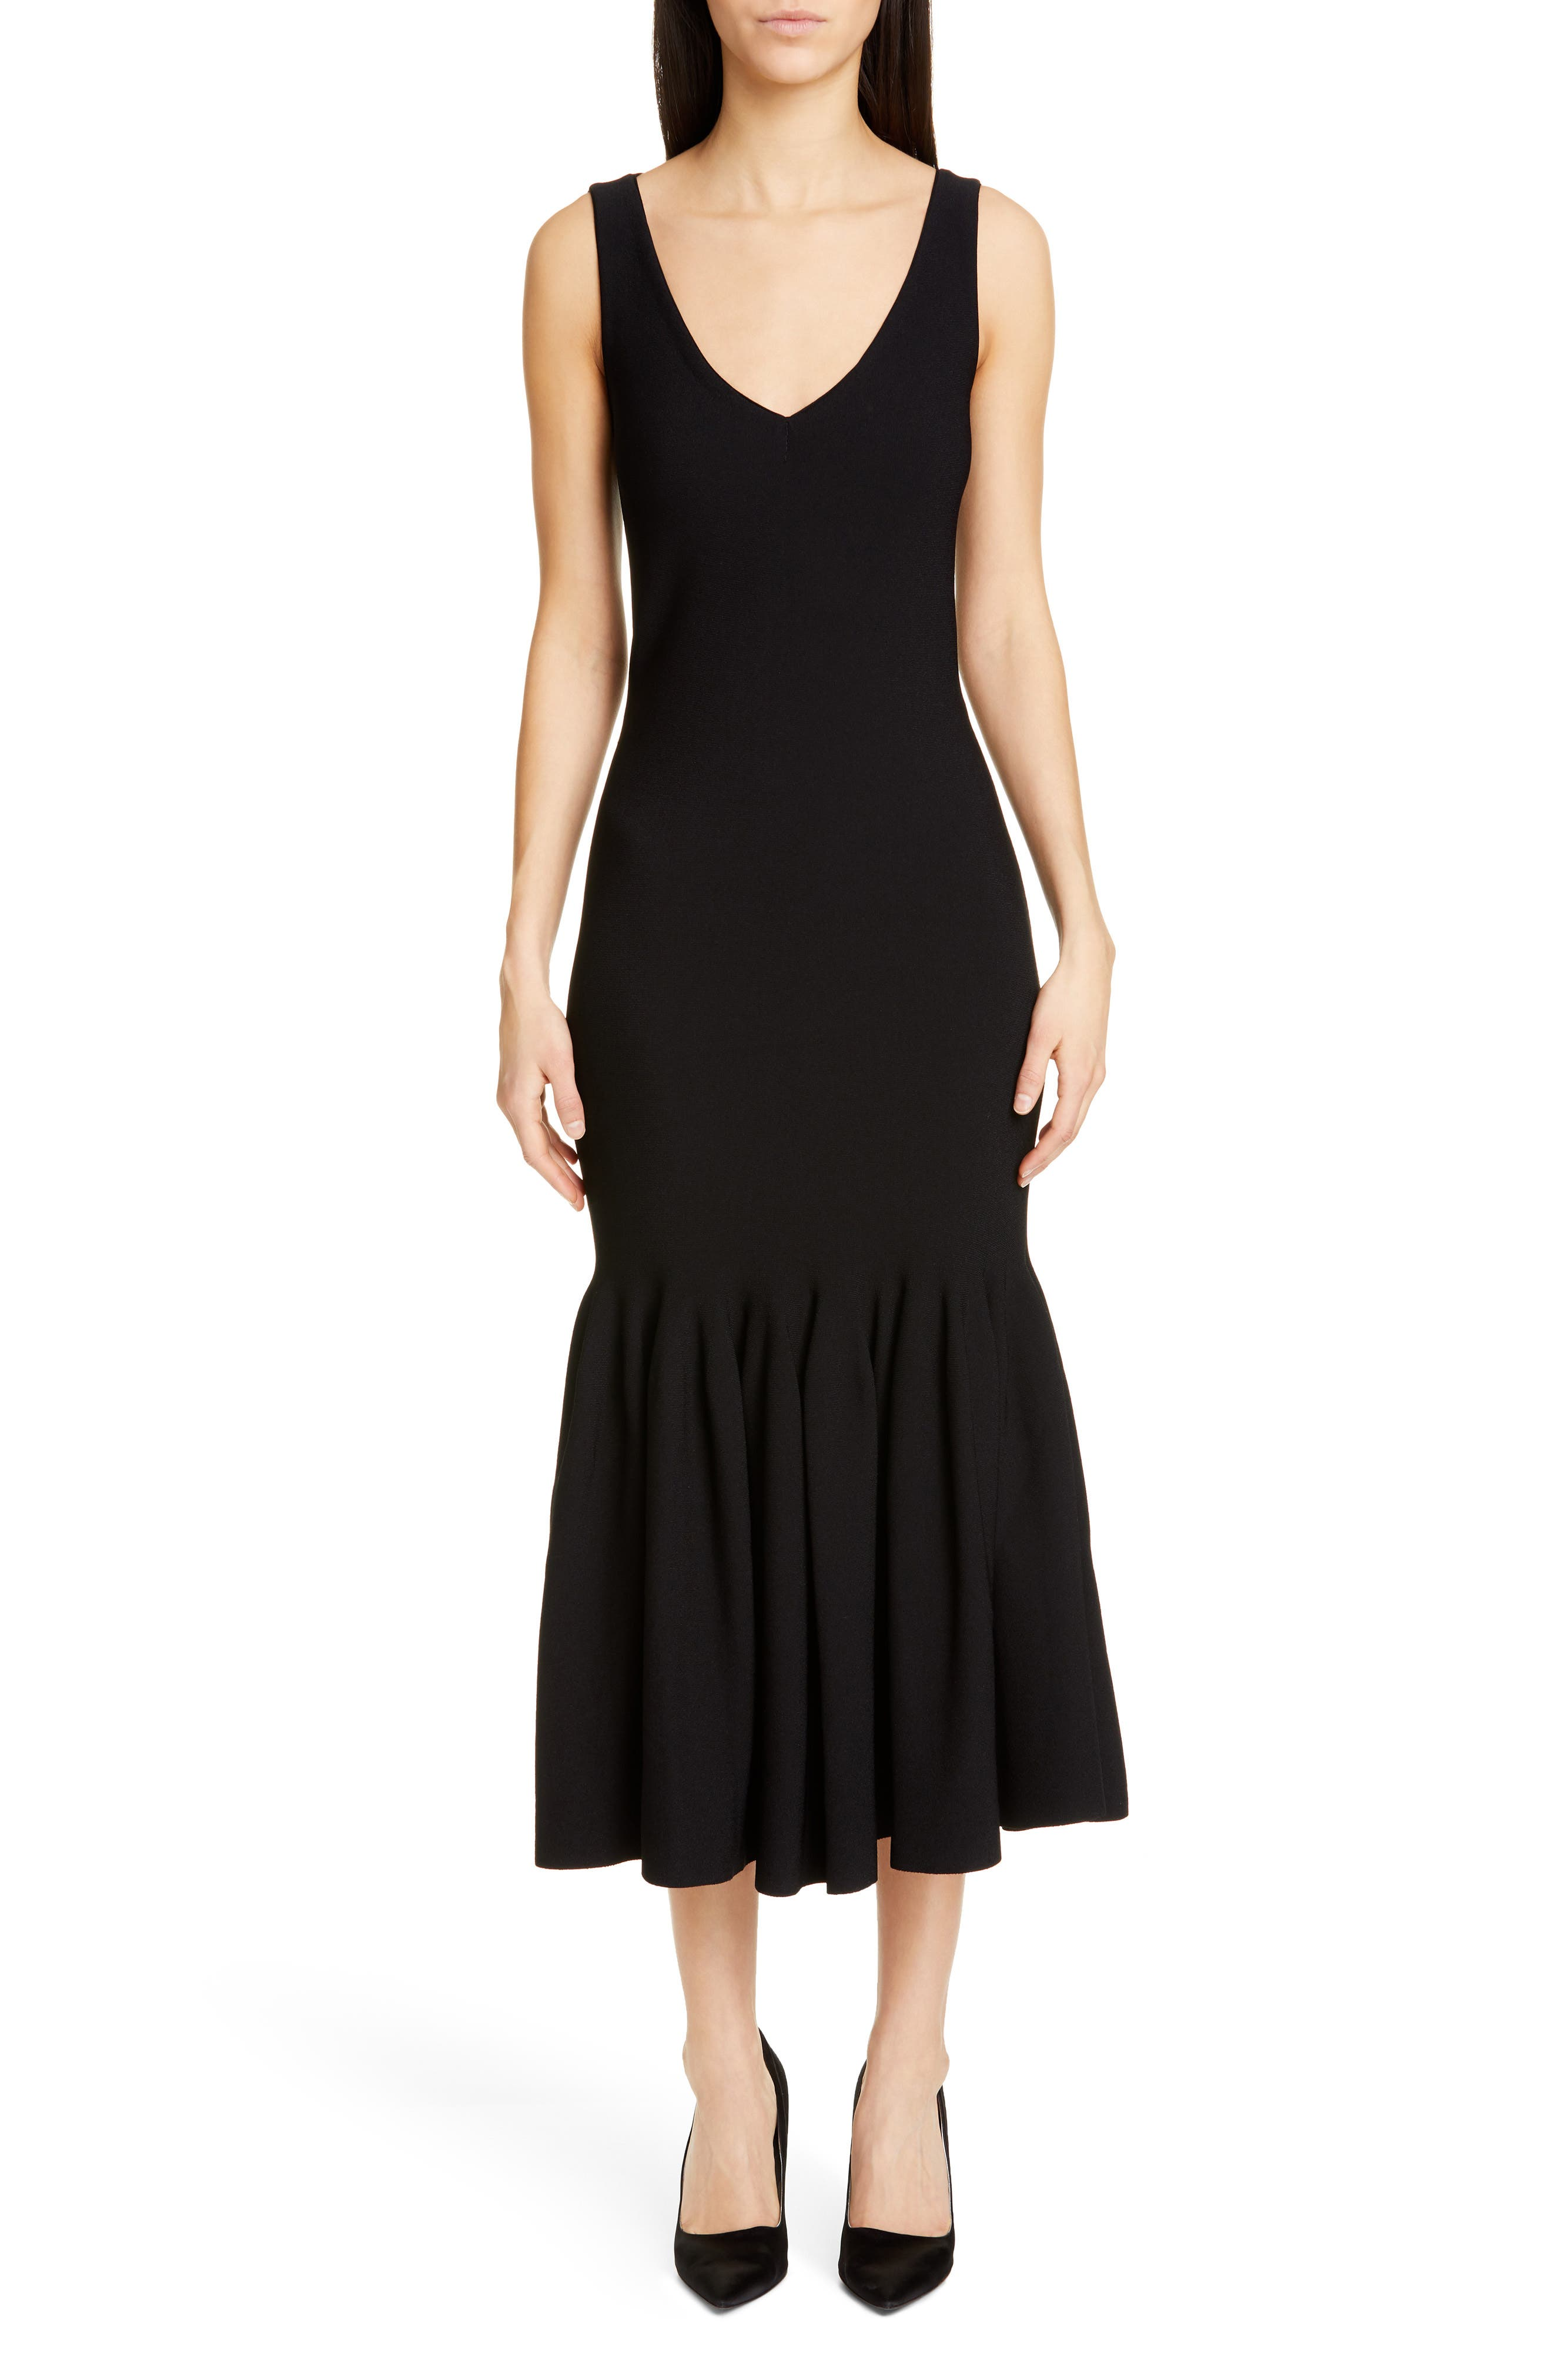 Stella Mccartney Flounce Hem Midi Dress, 48 IT - Black